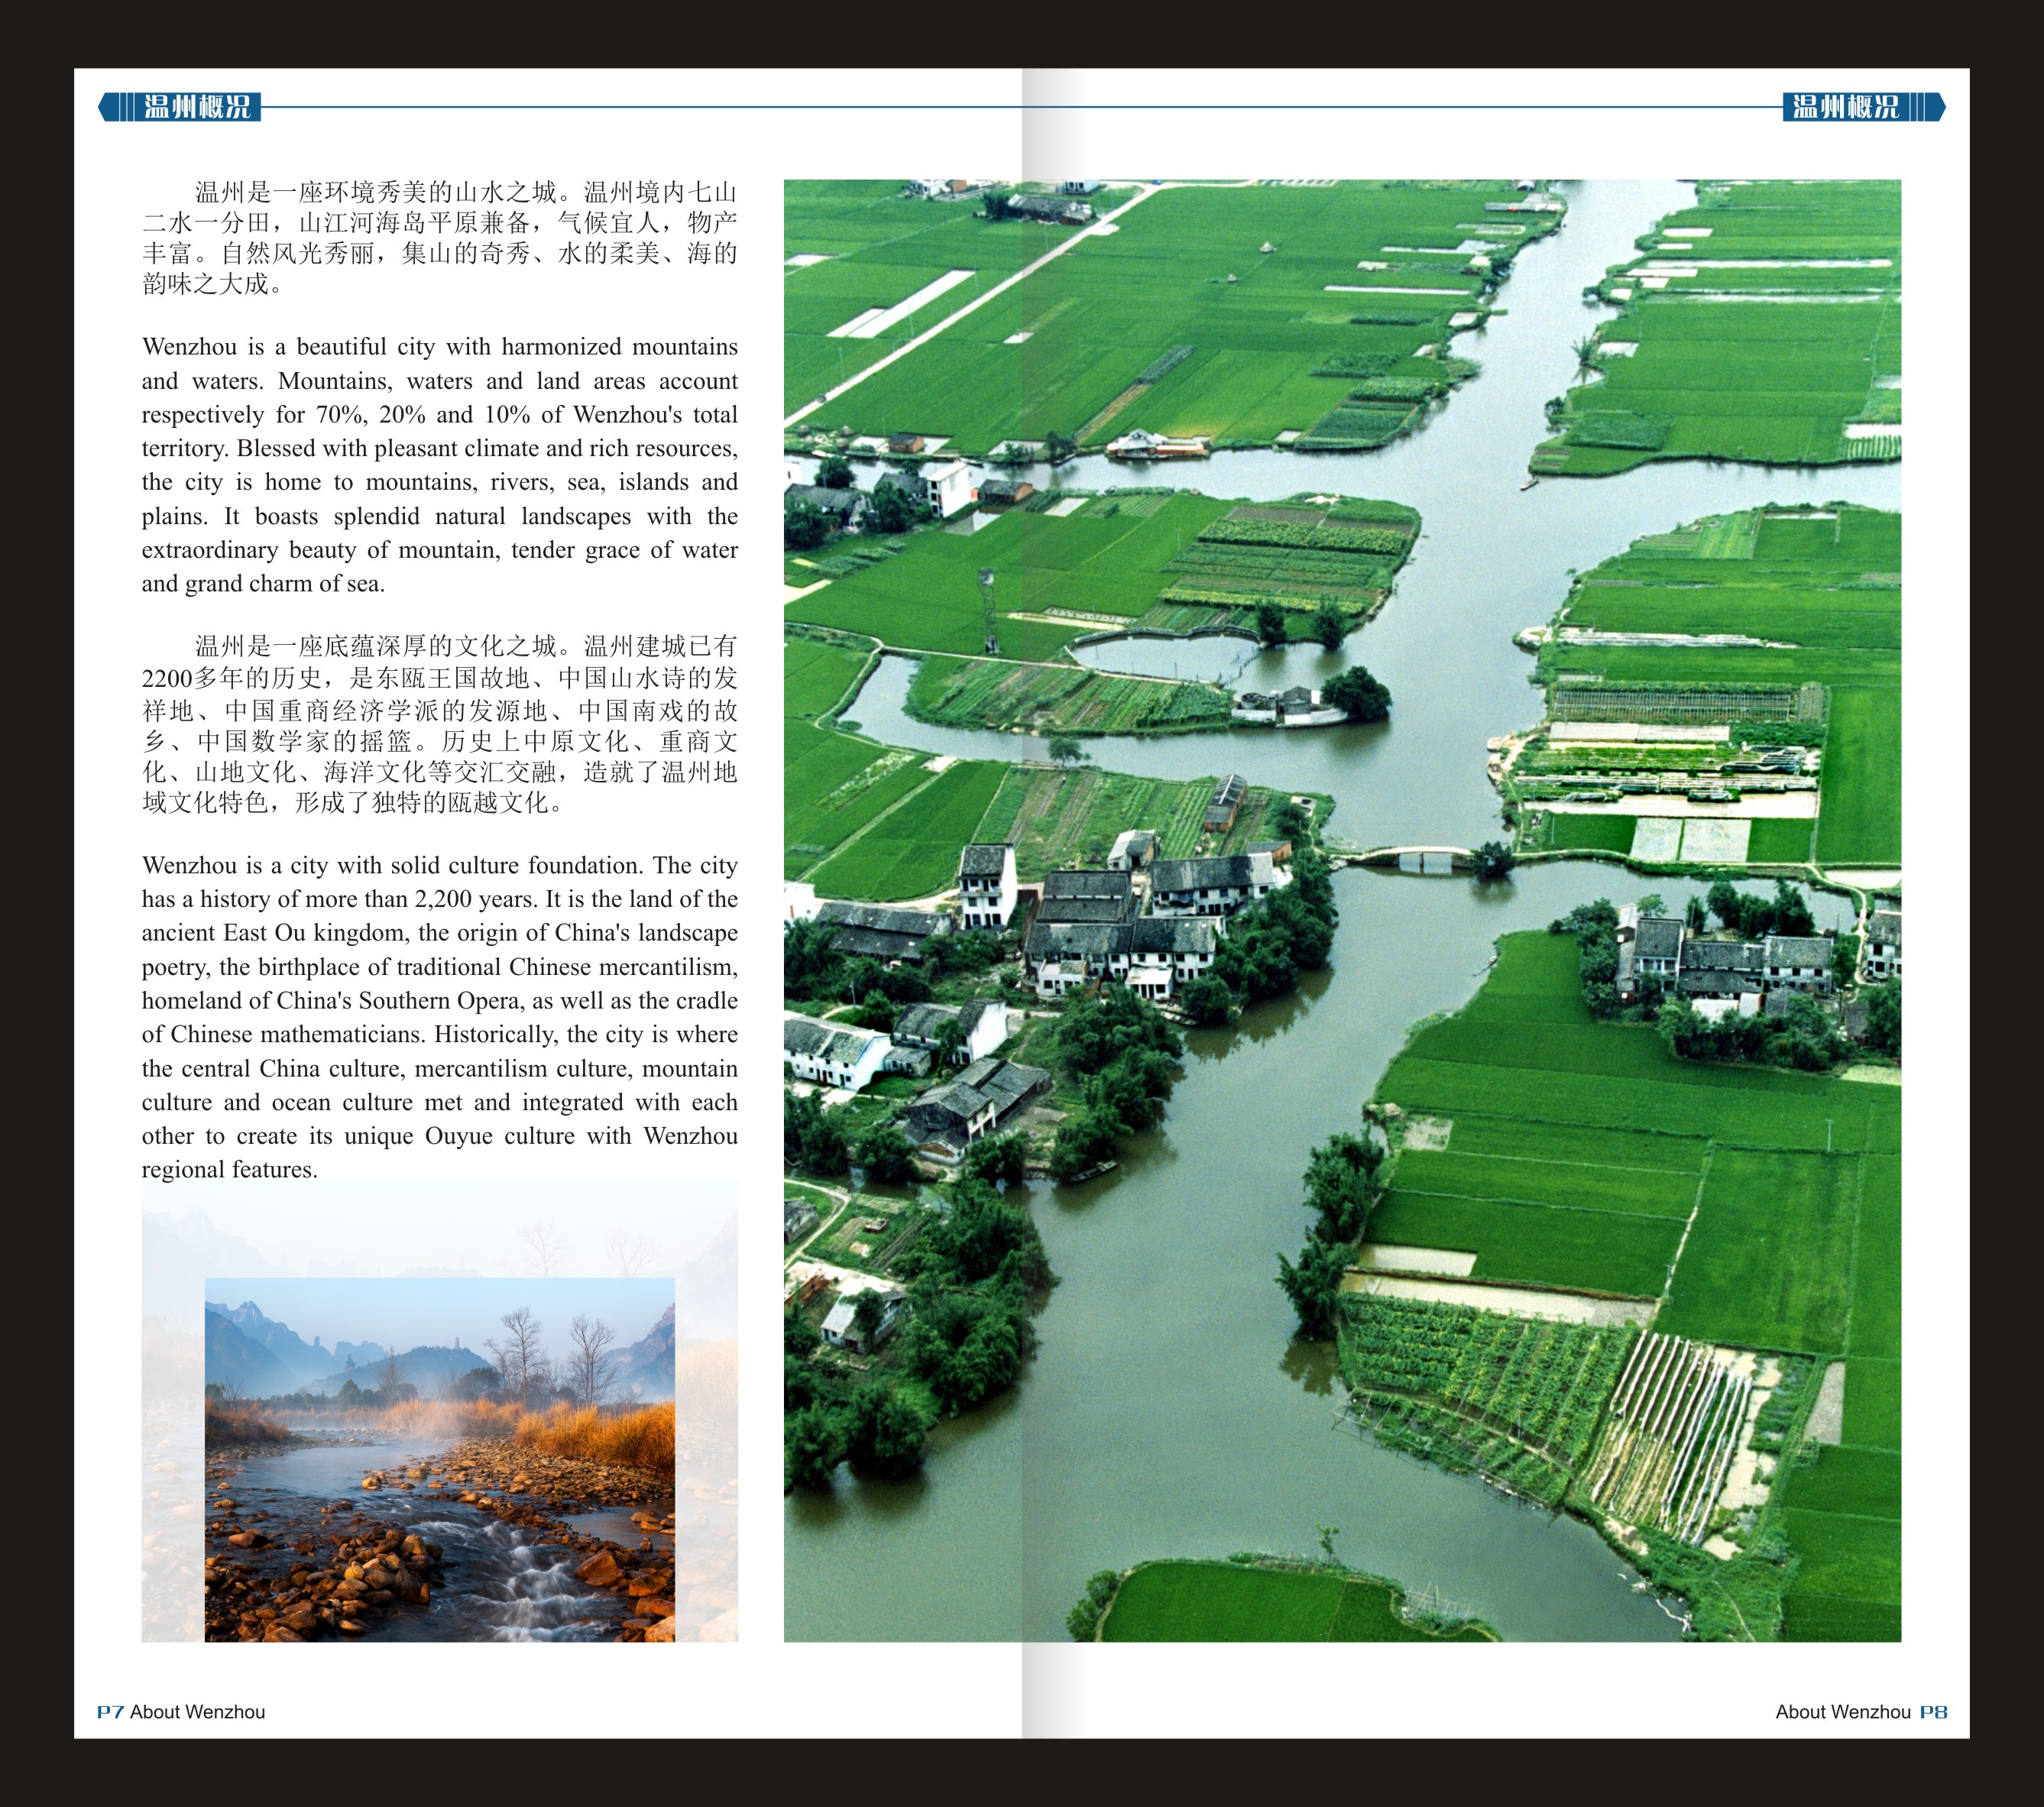 About Wenzhou